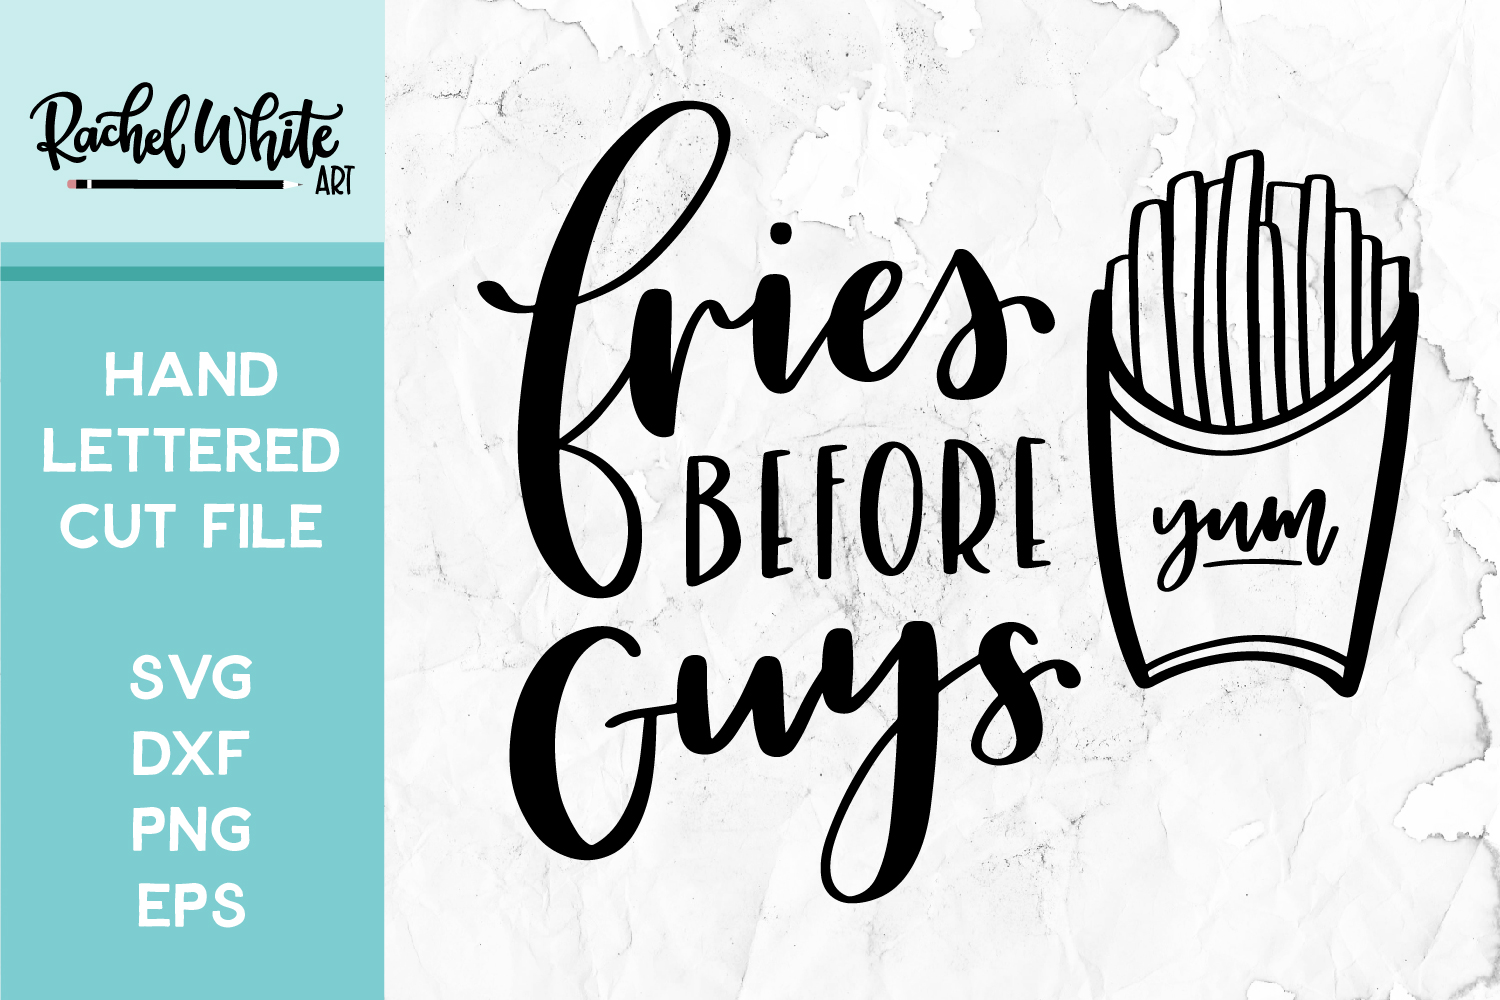 Cut File, Fries Before Guys SVG example image 1